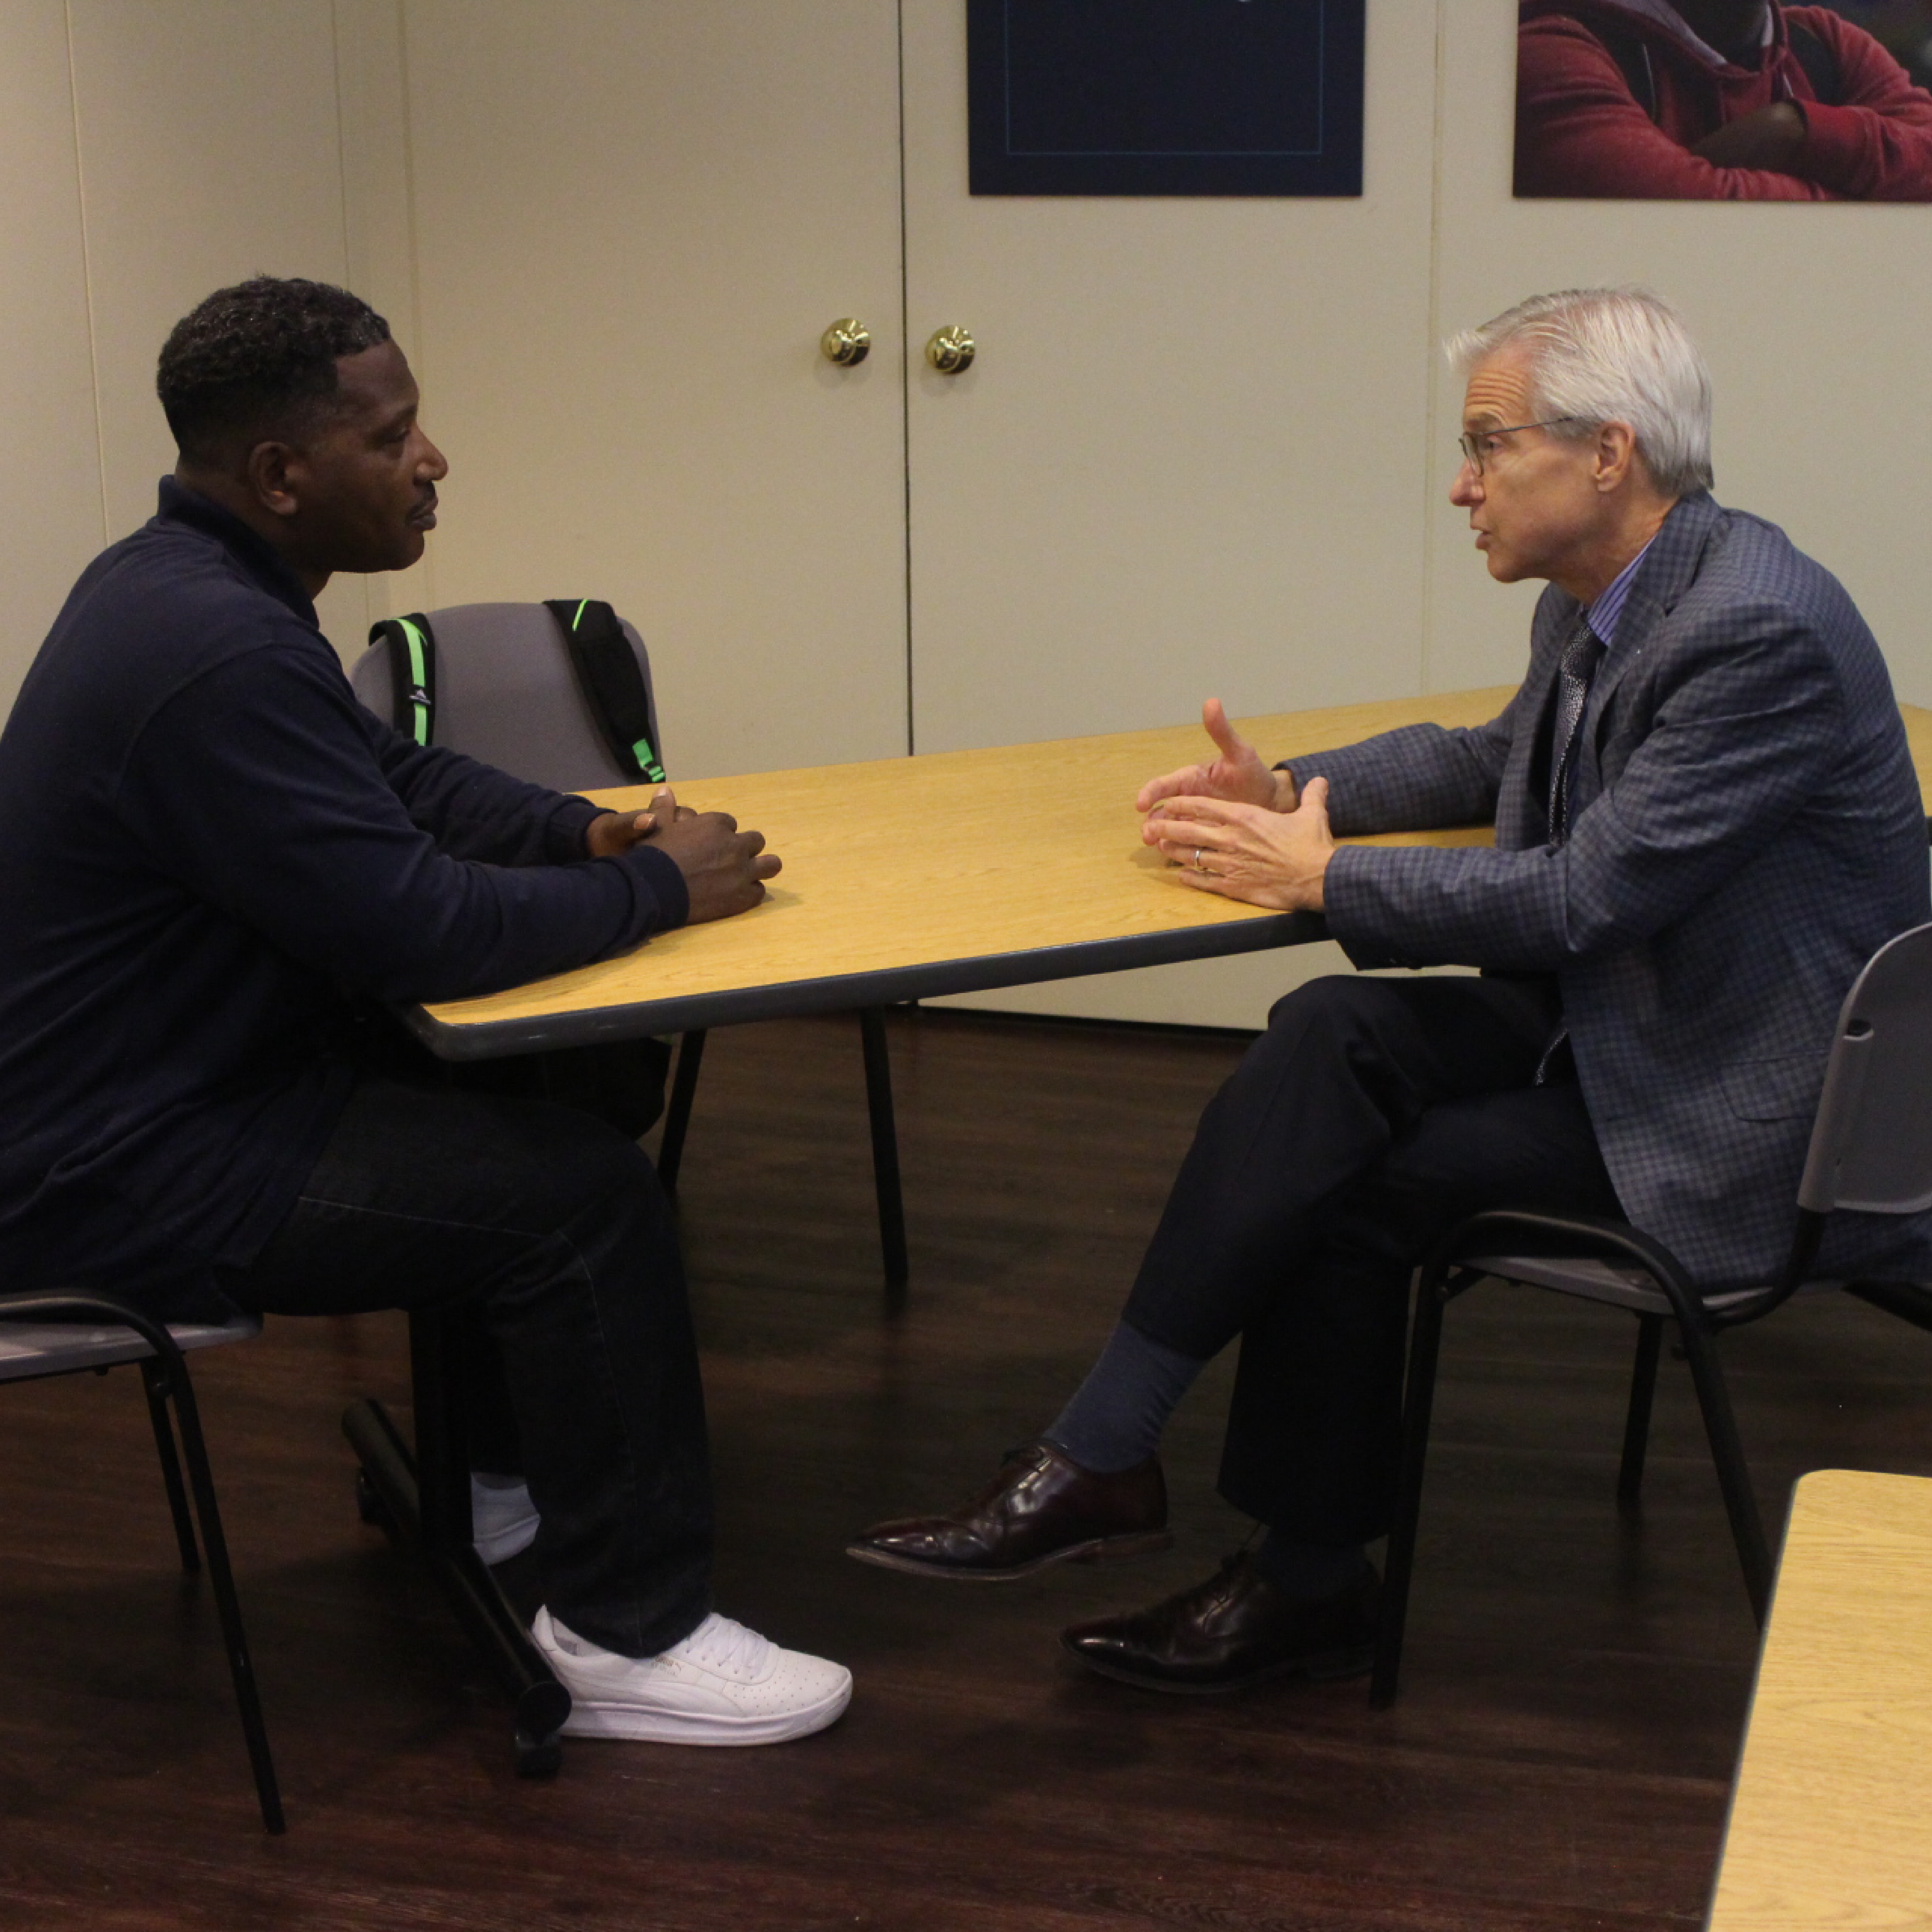 An ECS volunteer and board member helps a workforce development participant hone his interview skills